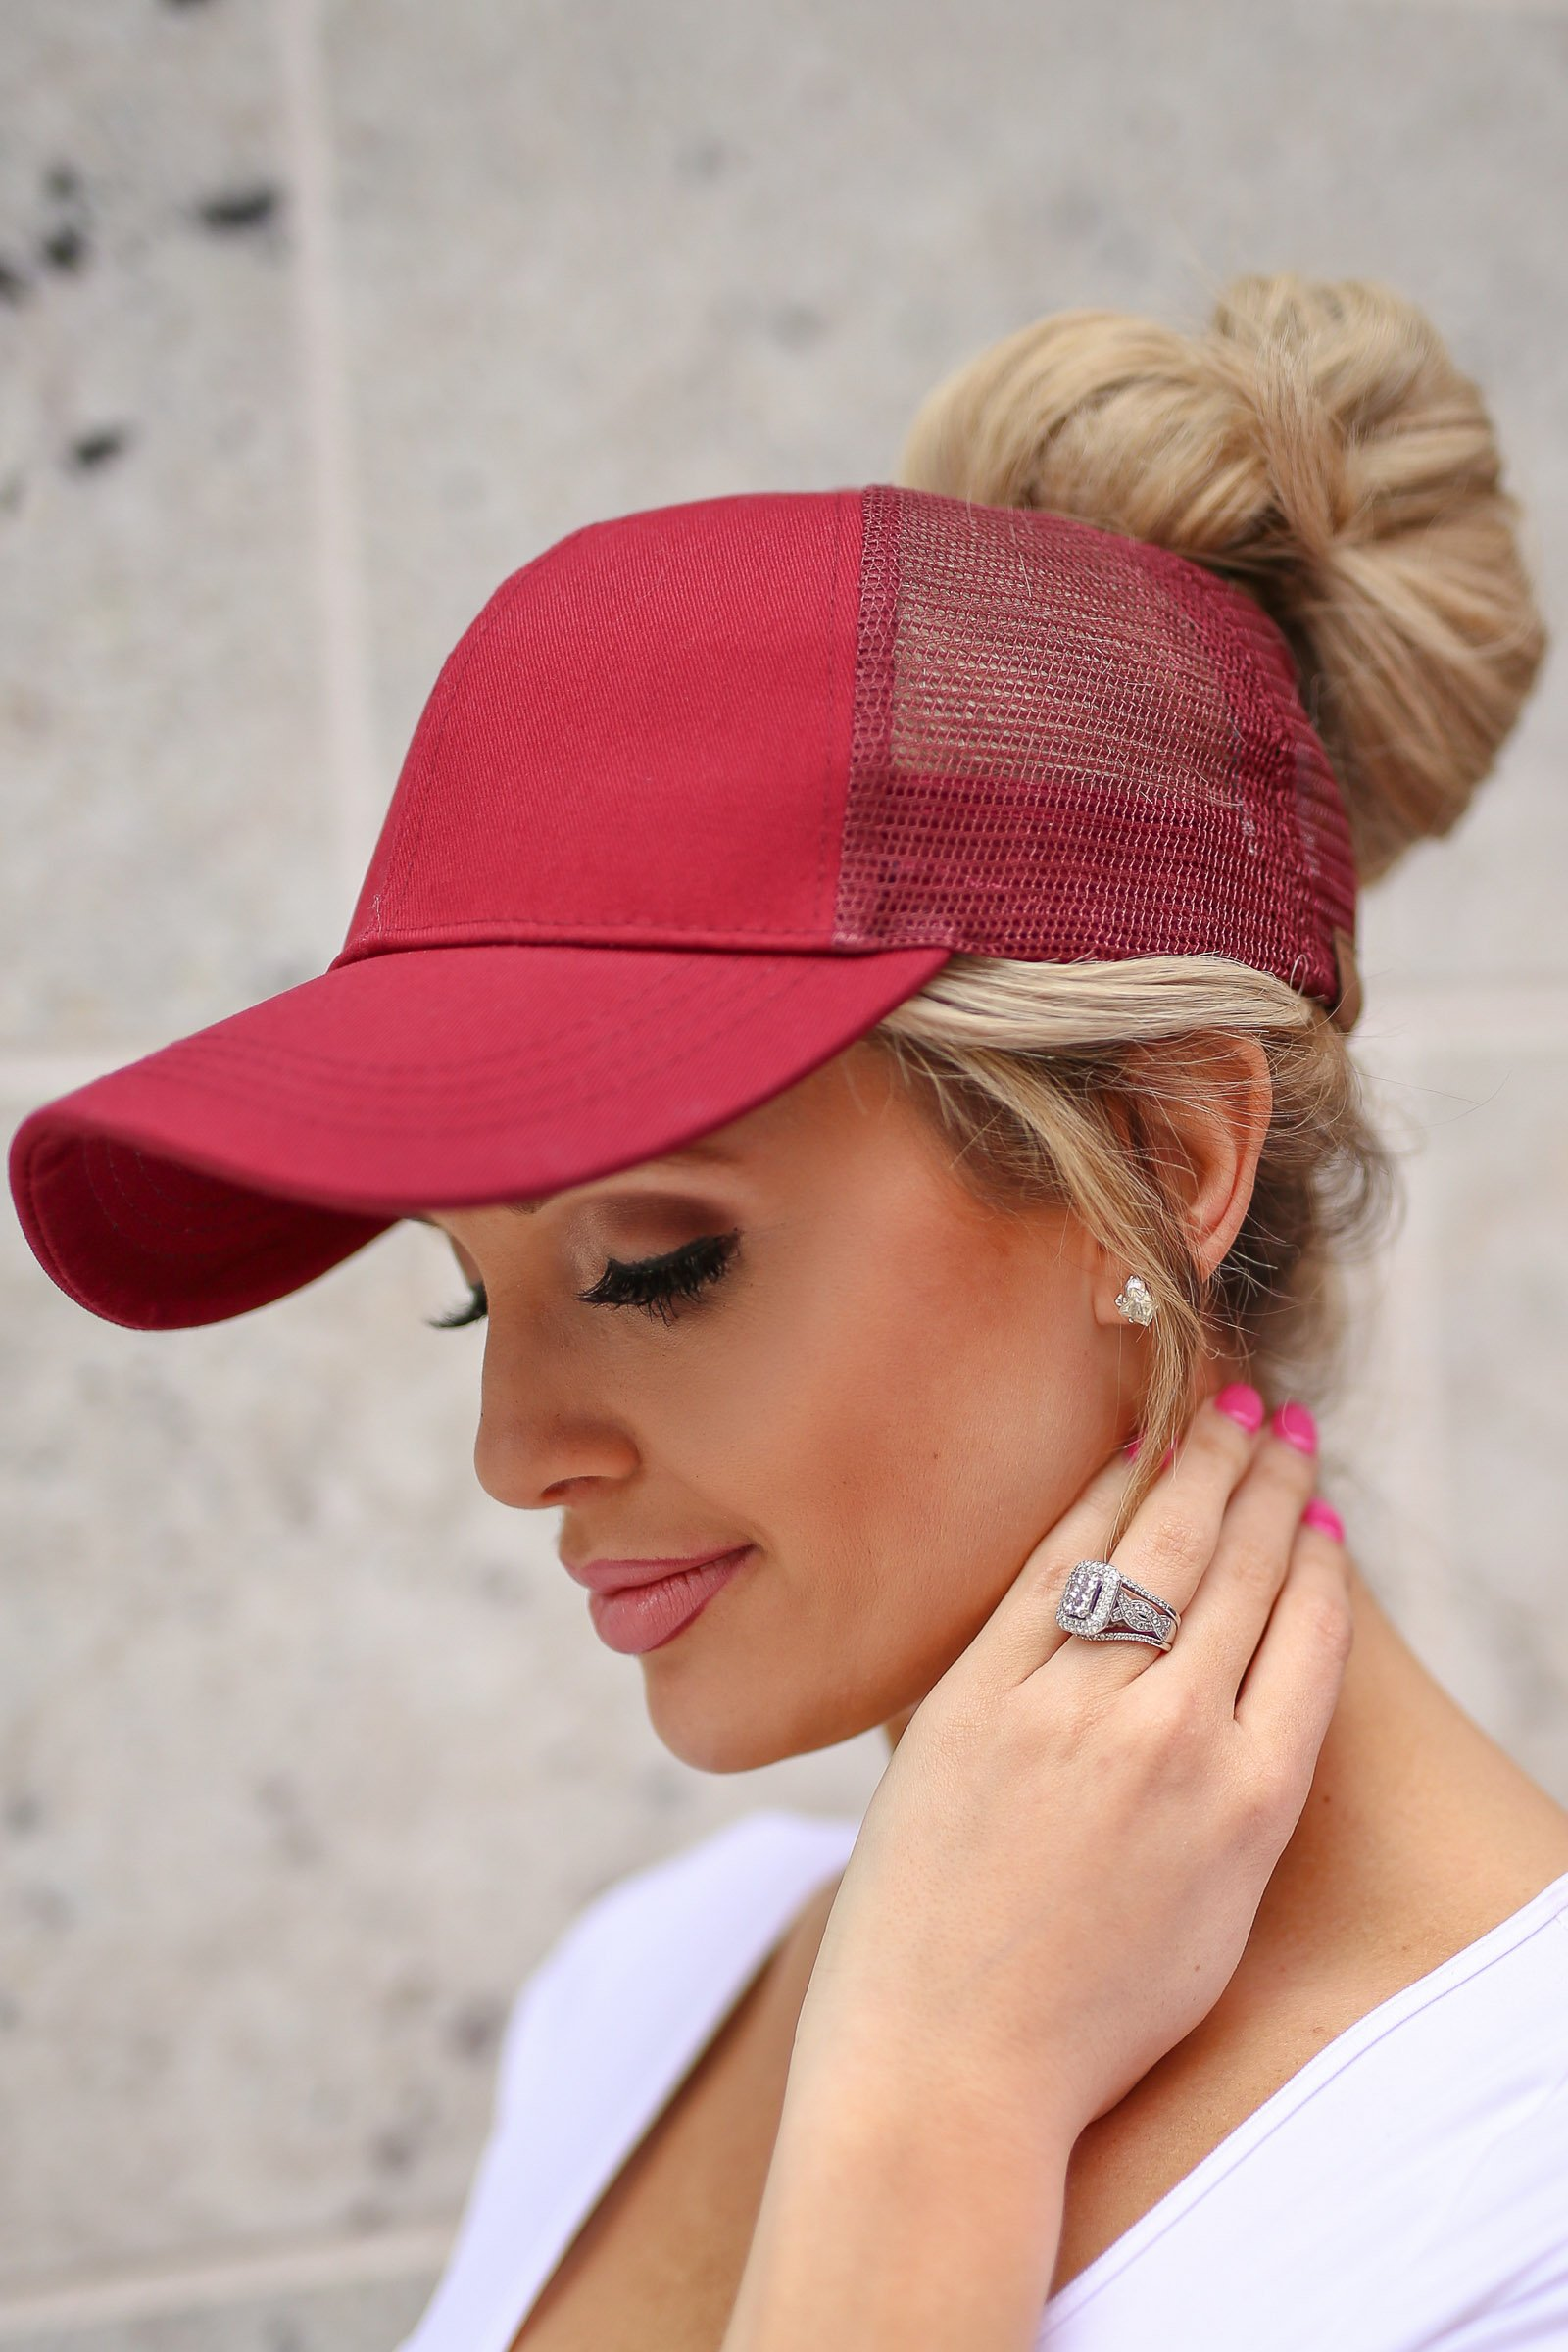 dd296ab906cbe Amore Ponytail Hats Messy Top Buns